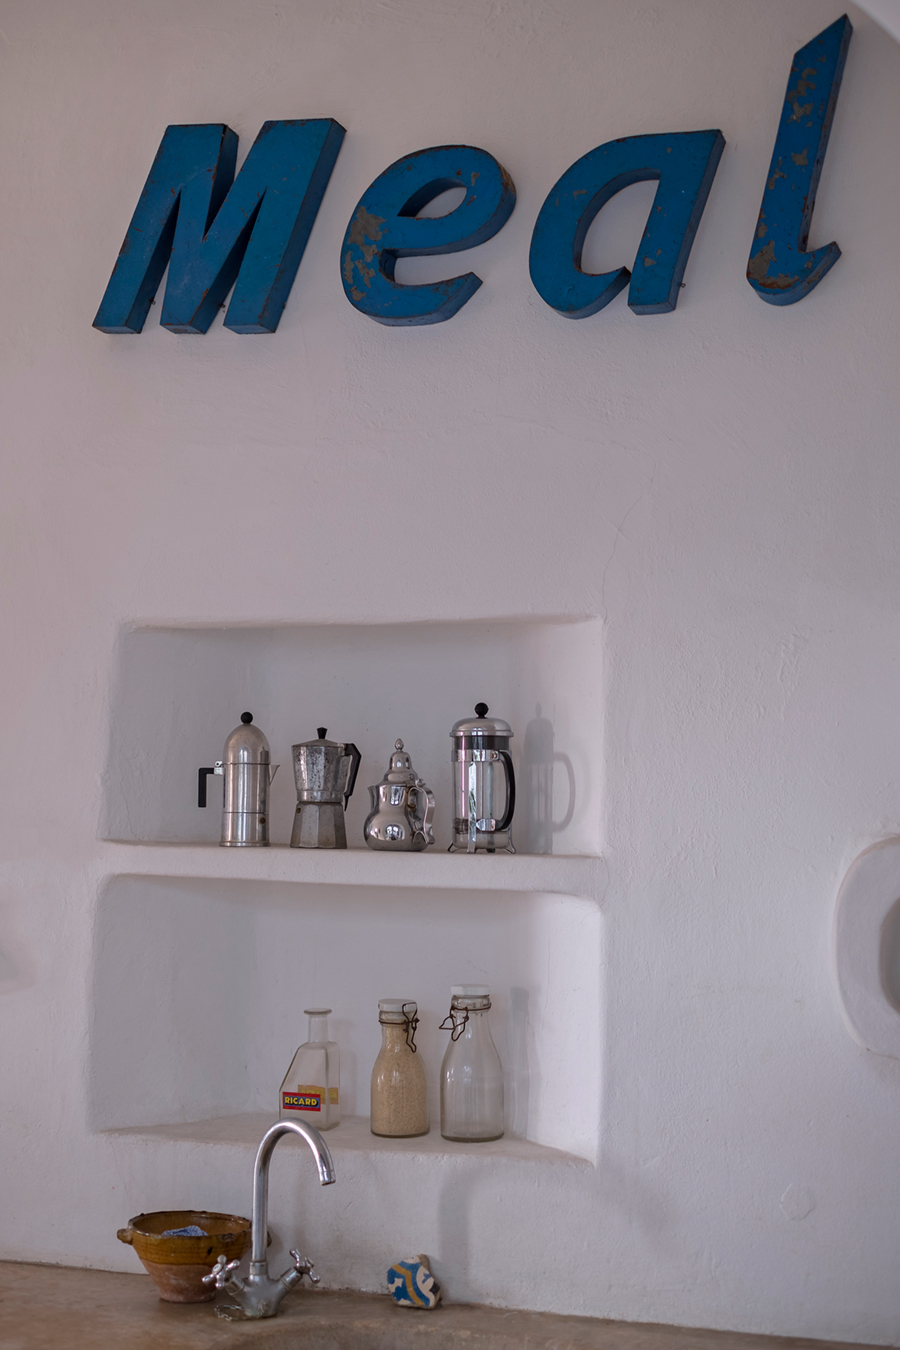 dar-beida-kitchen-sign.jpg